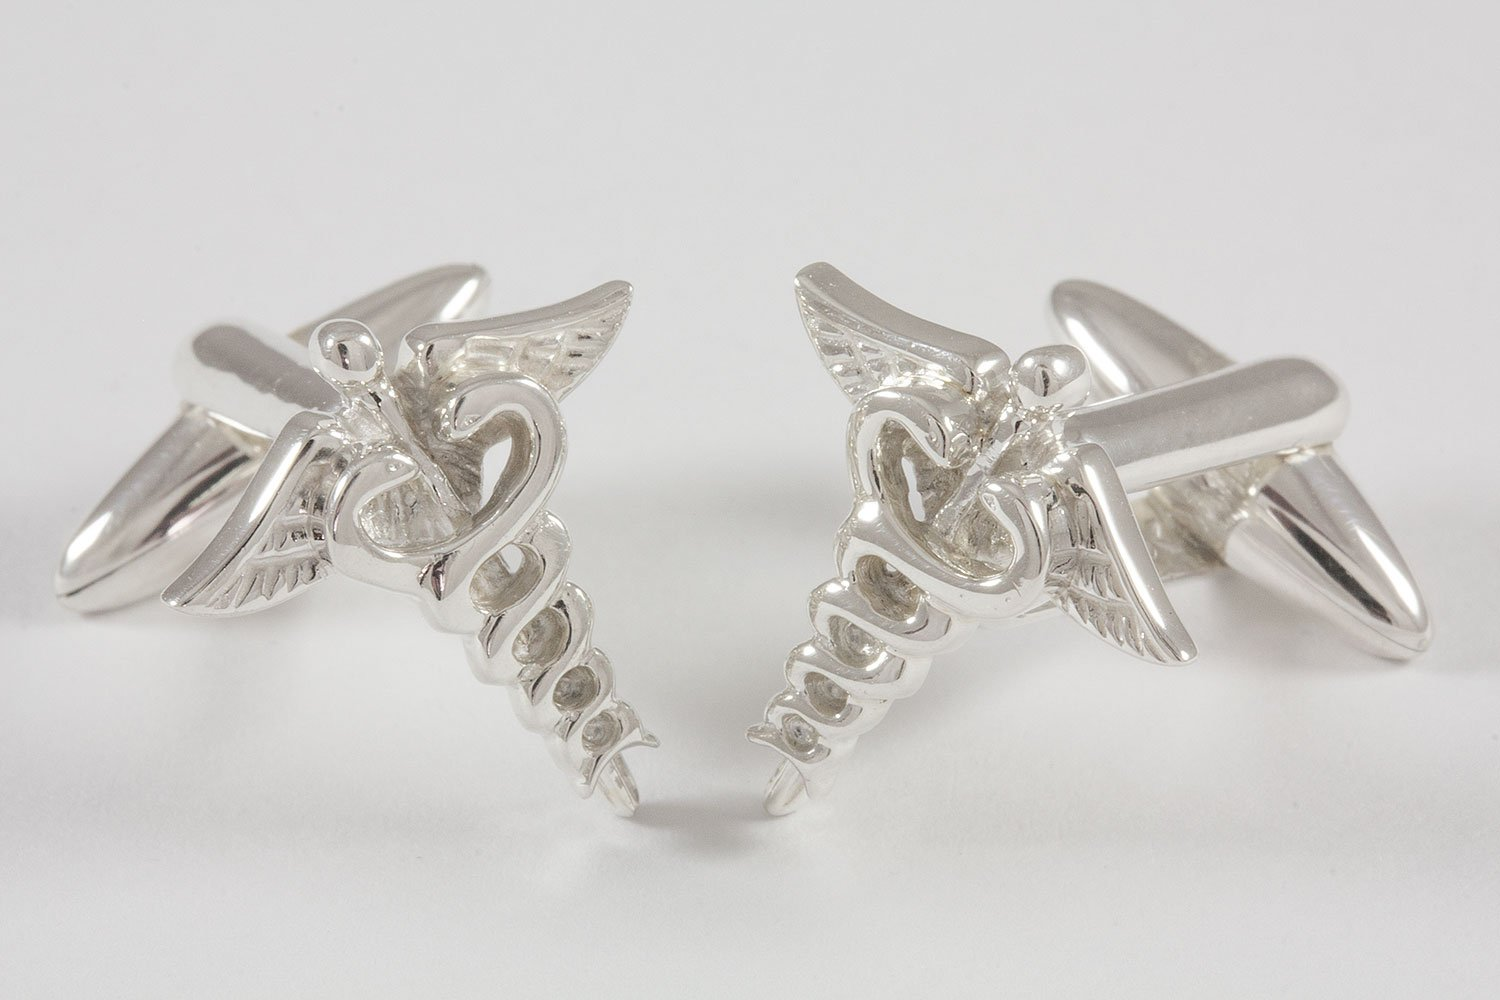 ZAUNICK Medical Doctor Caduceus Cufflinks, Sterling Silver by ZAUNICK (Image #2)